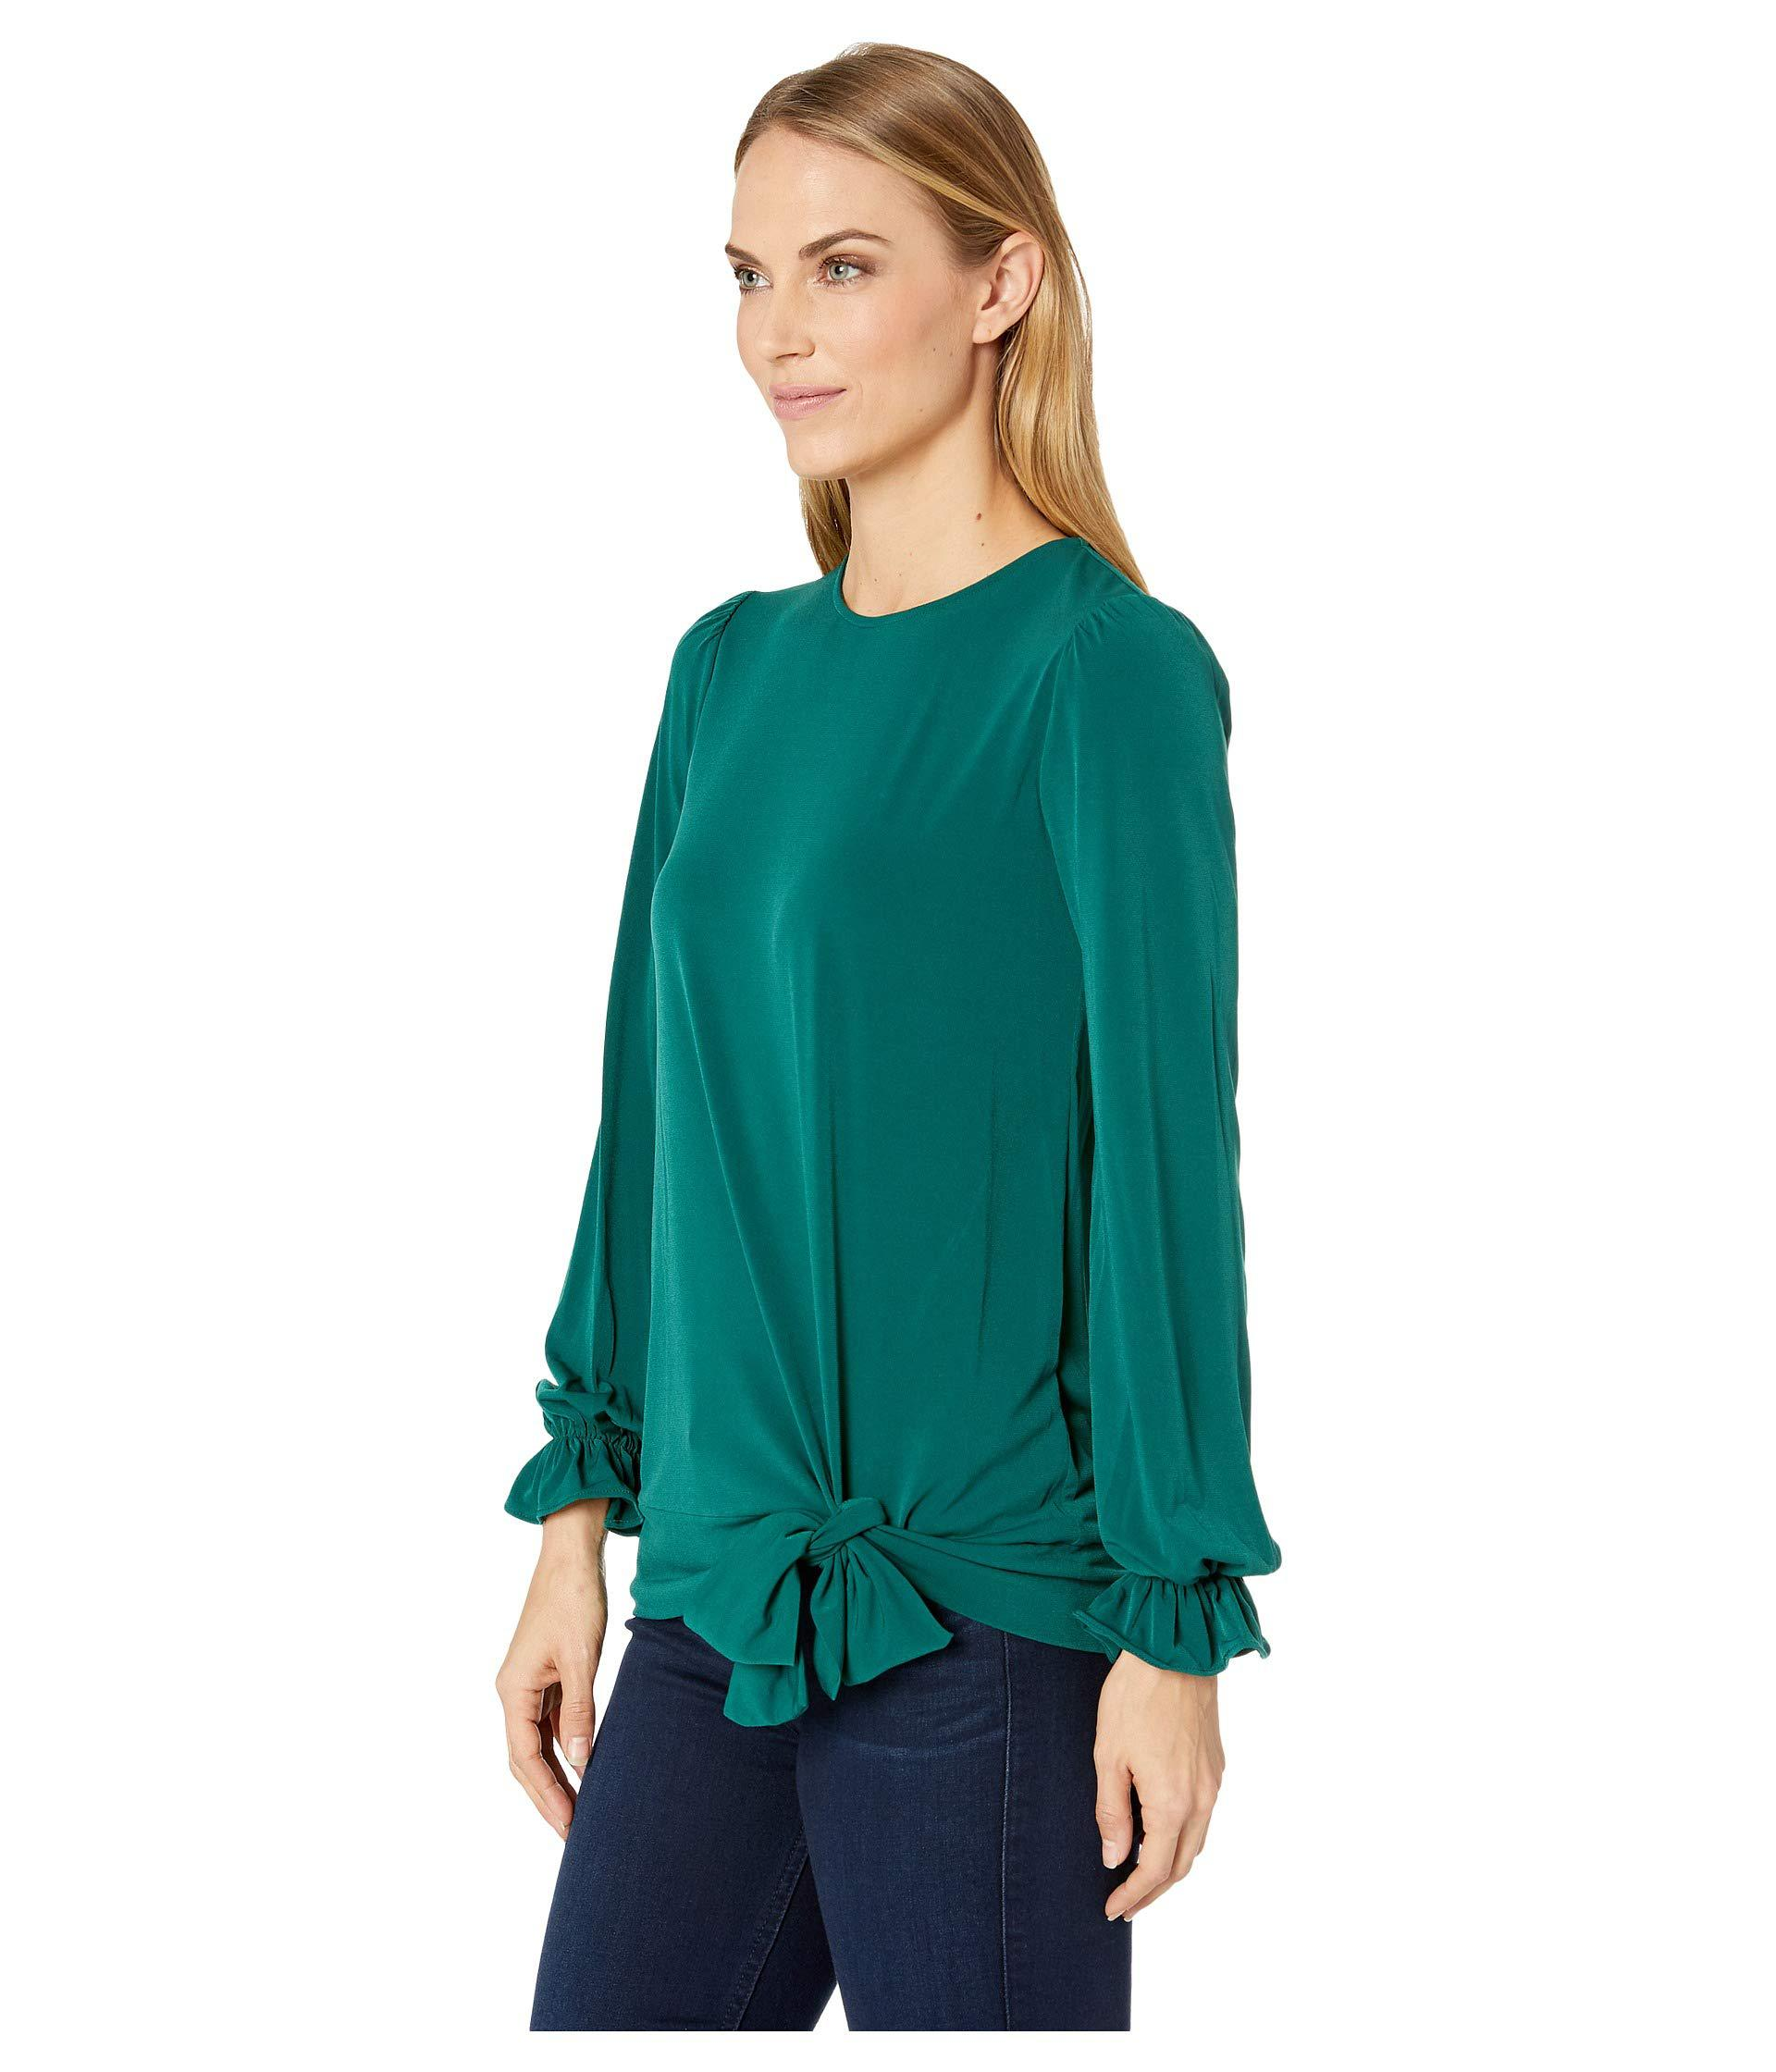 b848caccd50 Lyst - MICHAEL Michael Kors Long Sleeve Tie Blouse Top (dark Emerald) Women s  Clothing in Green